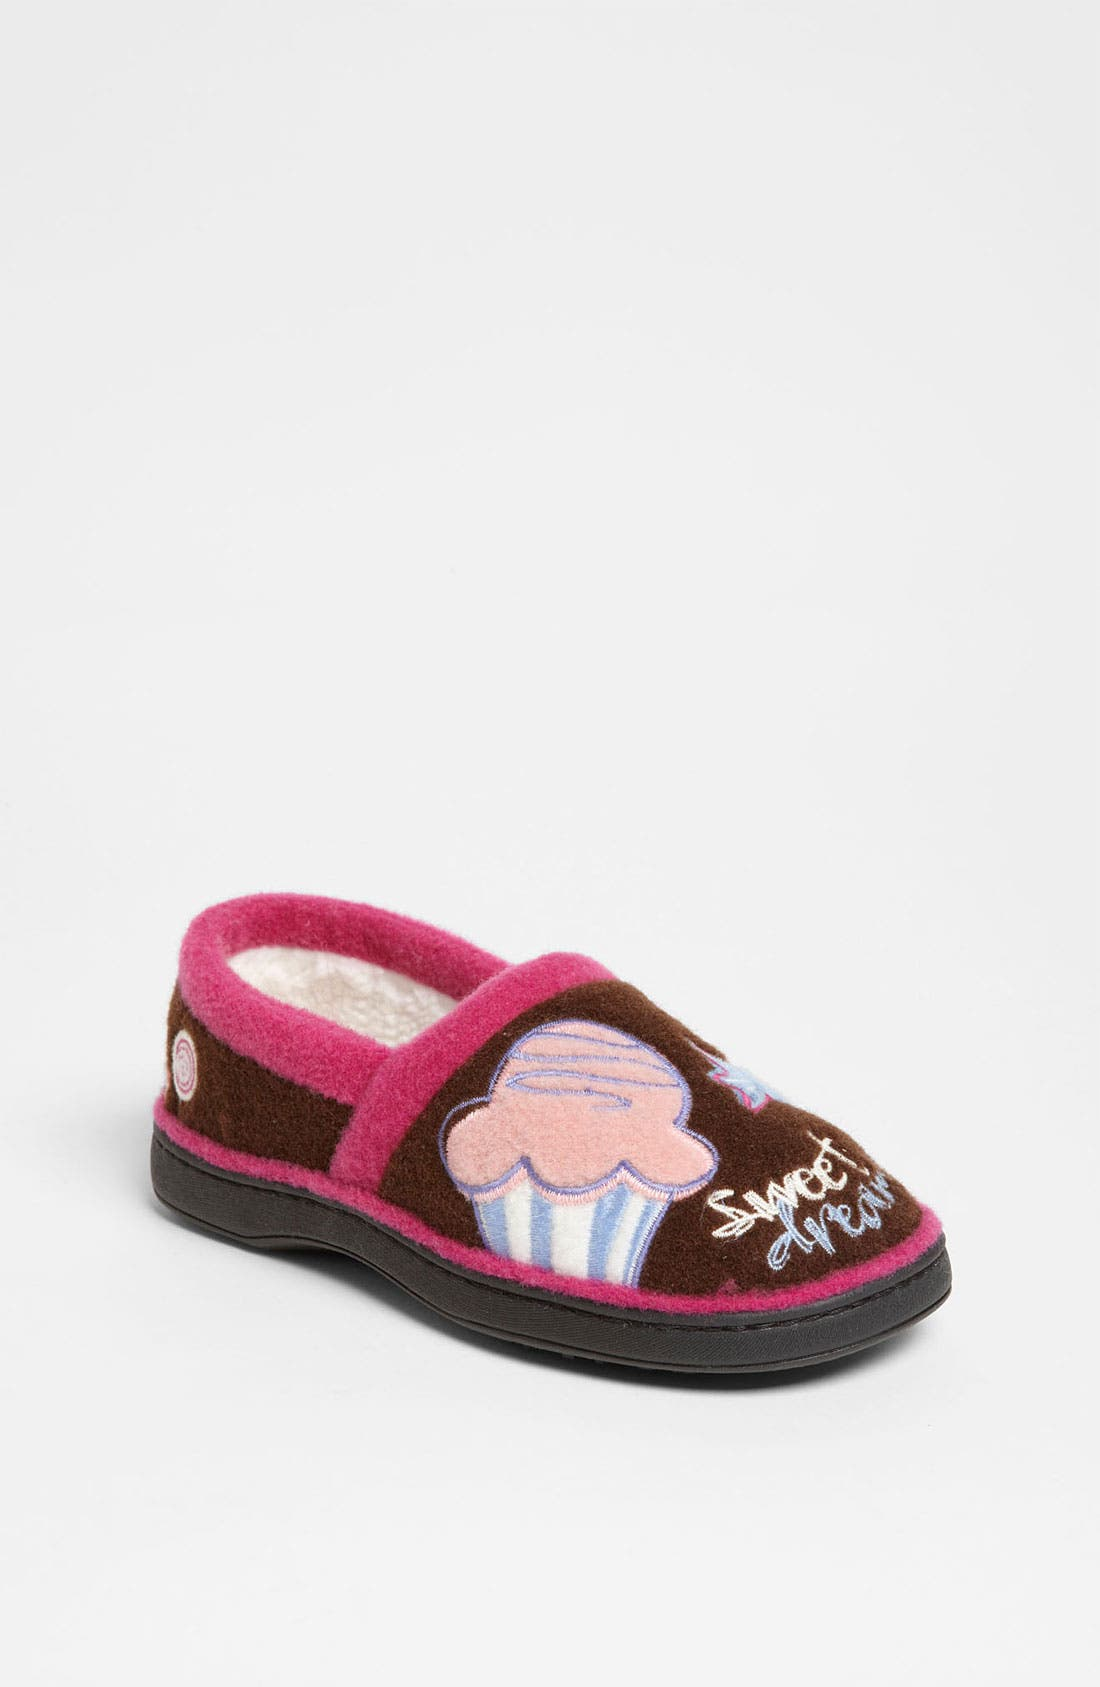 Main Image - Acorn 'Sweet Dreams' Slipper (Toddler, Little Kid & Big Kid)